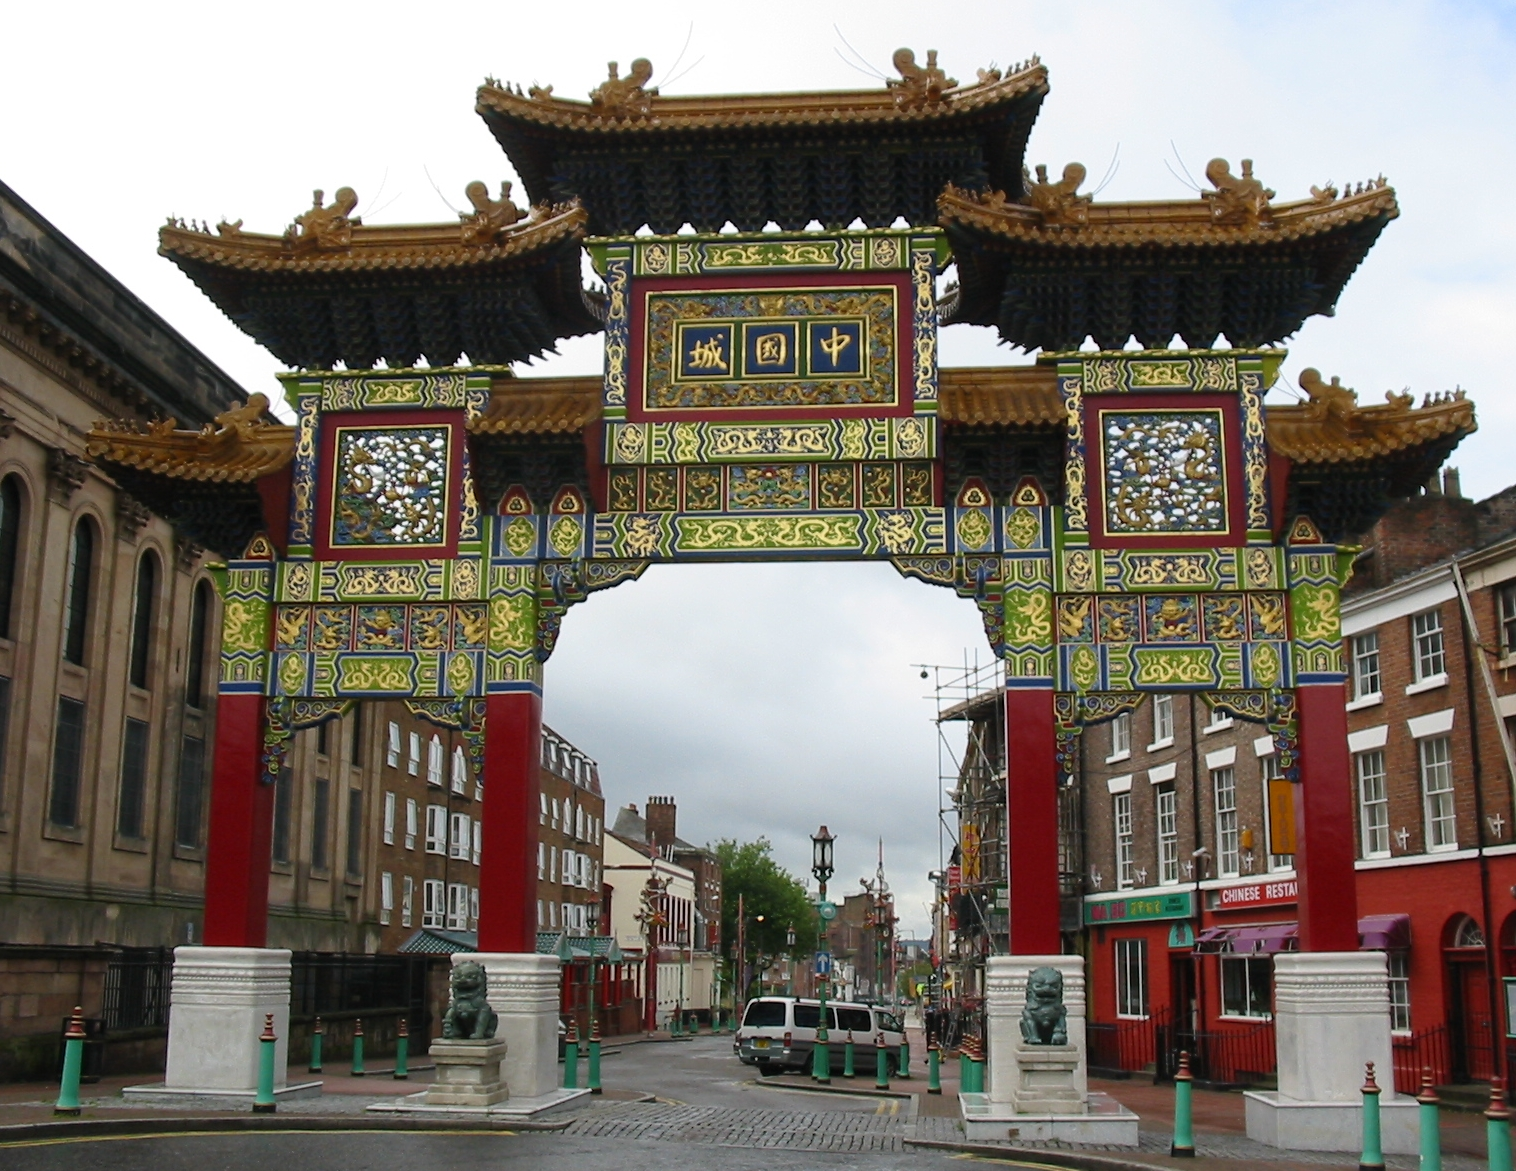 File:Liverpool Chinatown arch.jpg - Wikimedia Commons